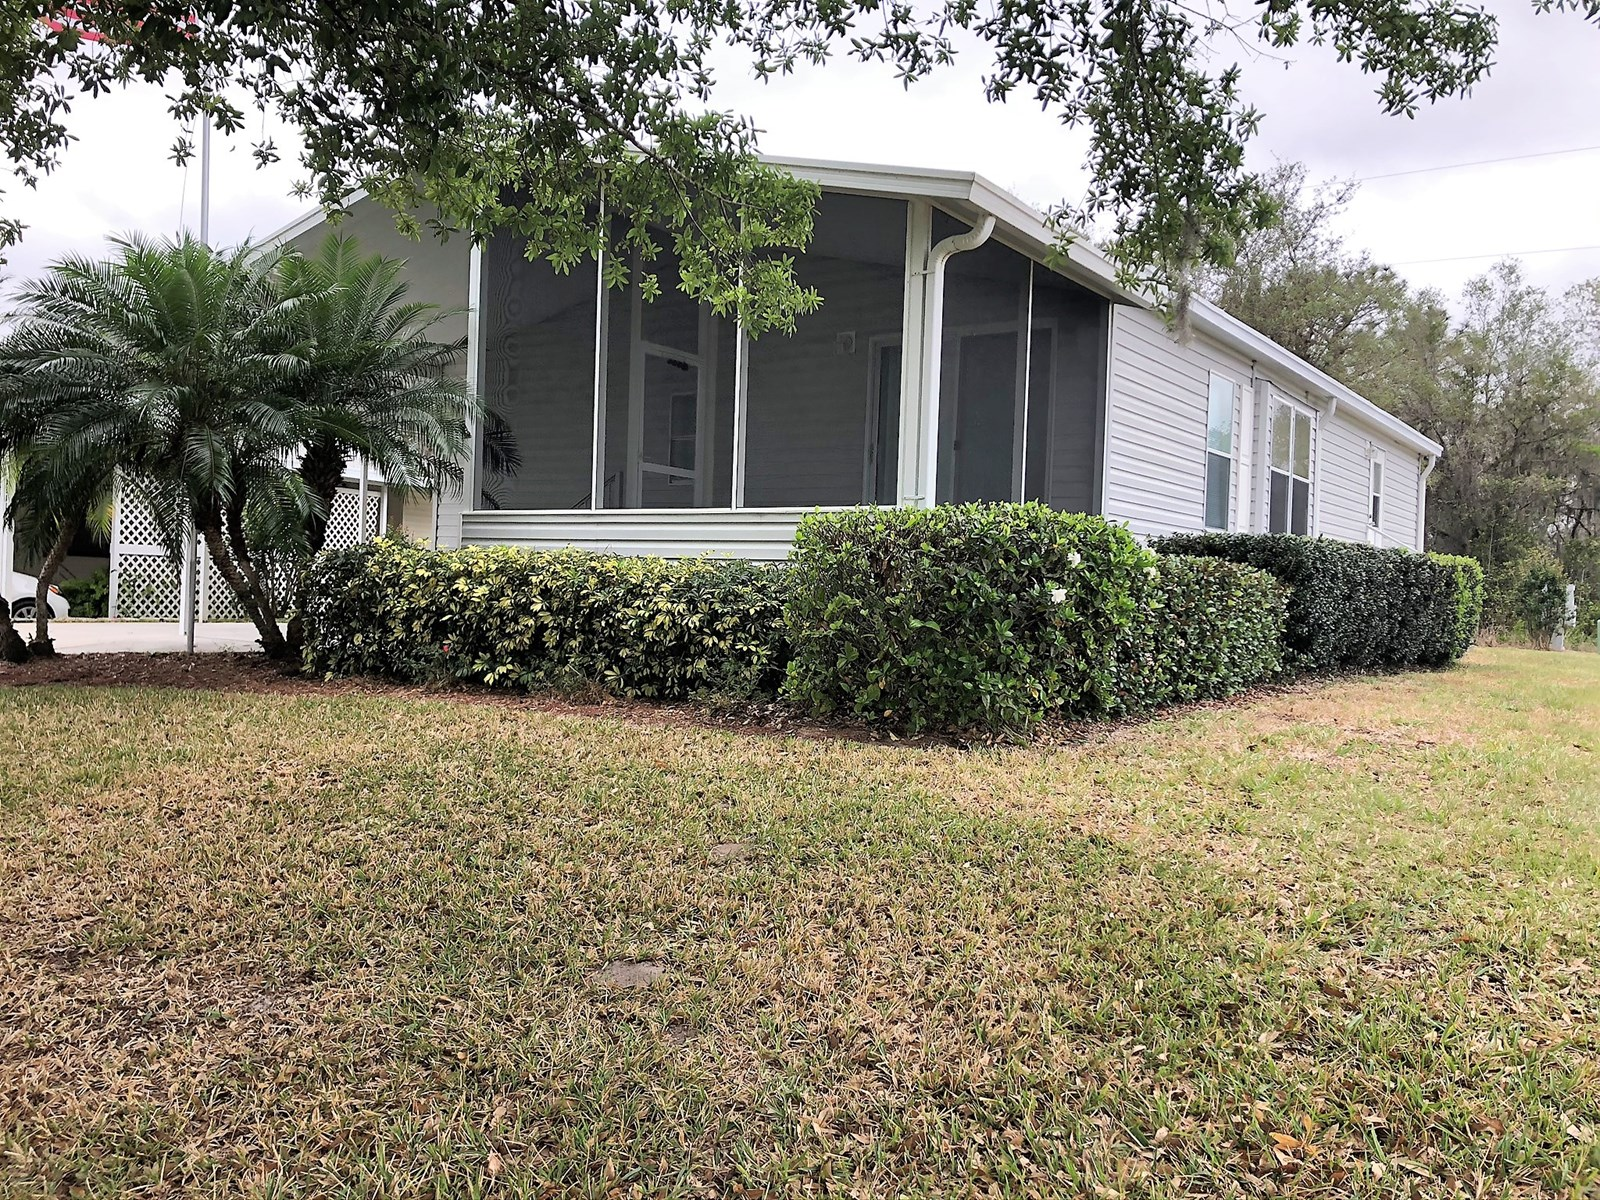 2/2 MOBILE HOME FOR SALE, 55+ COMMUNITY, CENTRAL FLORIDA,